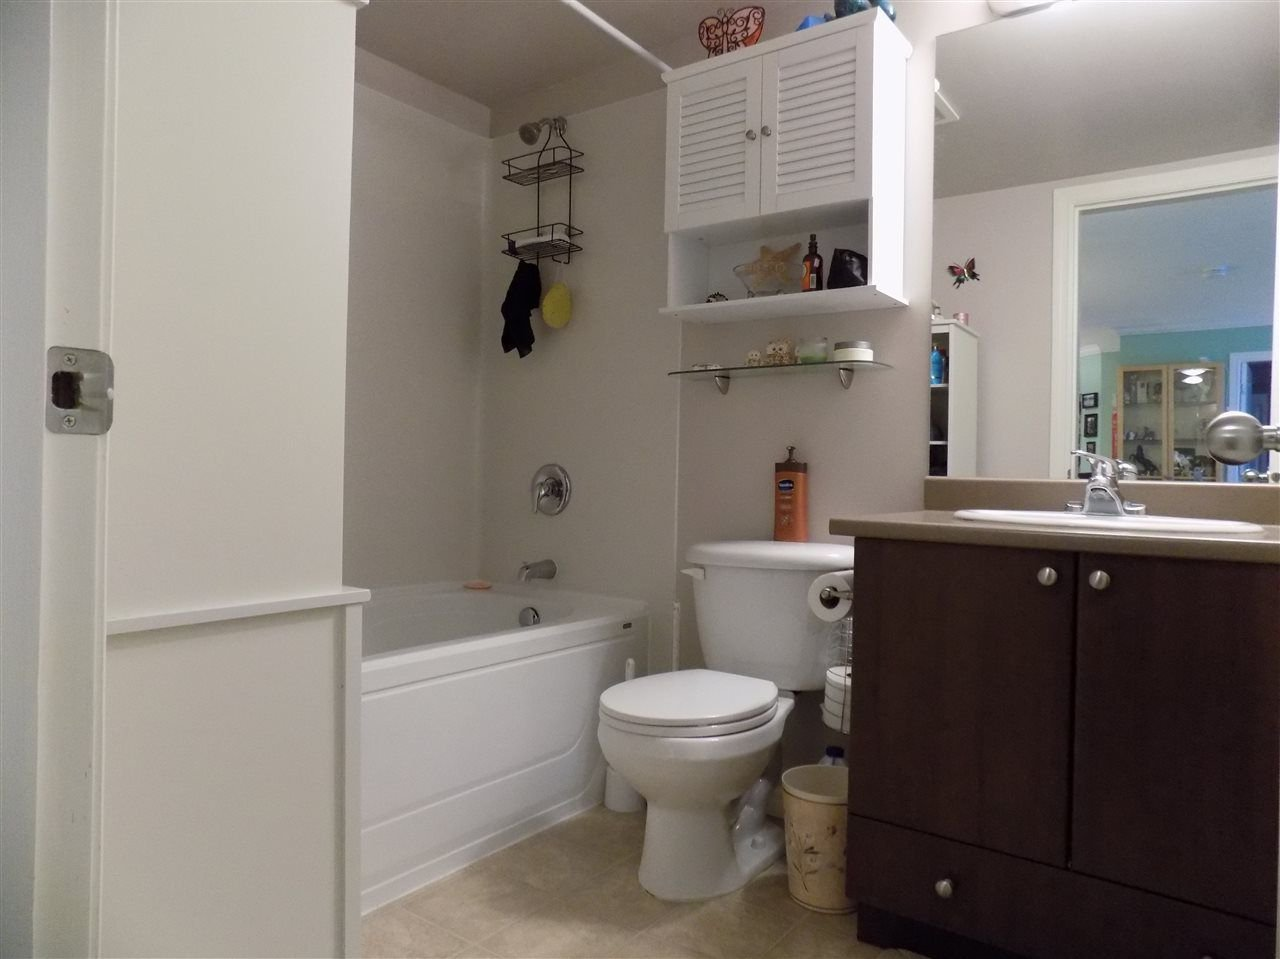 """Photo 10: Photos: 111 2581 LANGDON Street in Abbotsford: Abbotsford West Condo for sale in """"COBBLESTONE"""" : MLS®# R2258869"""